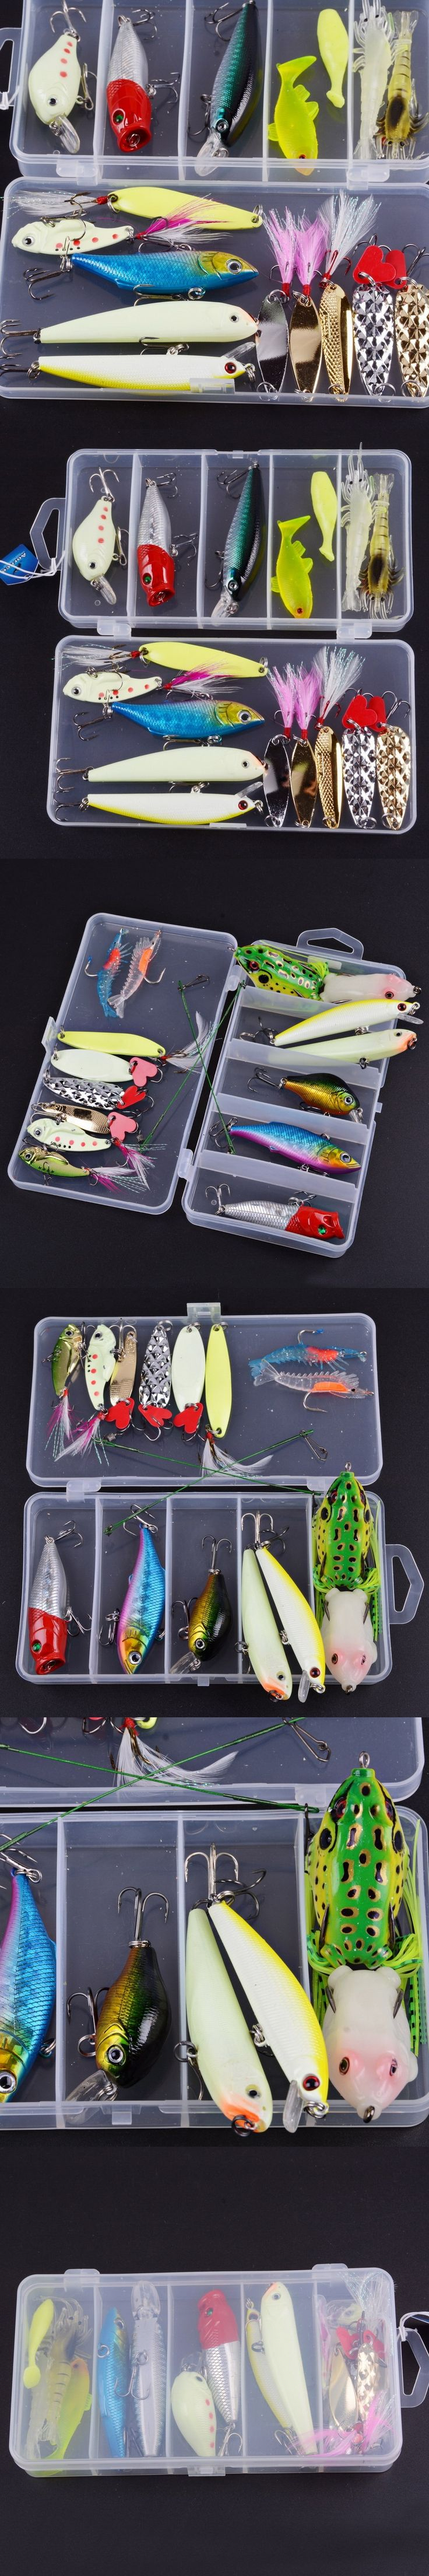 17pcs Fishing Lure Kit Mixed Luminous Night Fishing Minnow Lure Frog Lure VIB Metal Isca Artificial Hard Bait Leurre Souple Isca